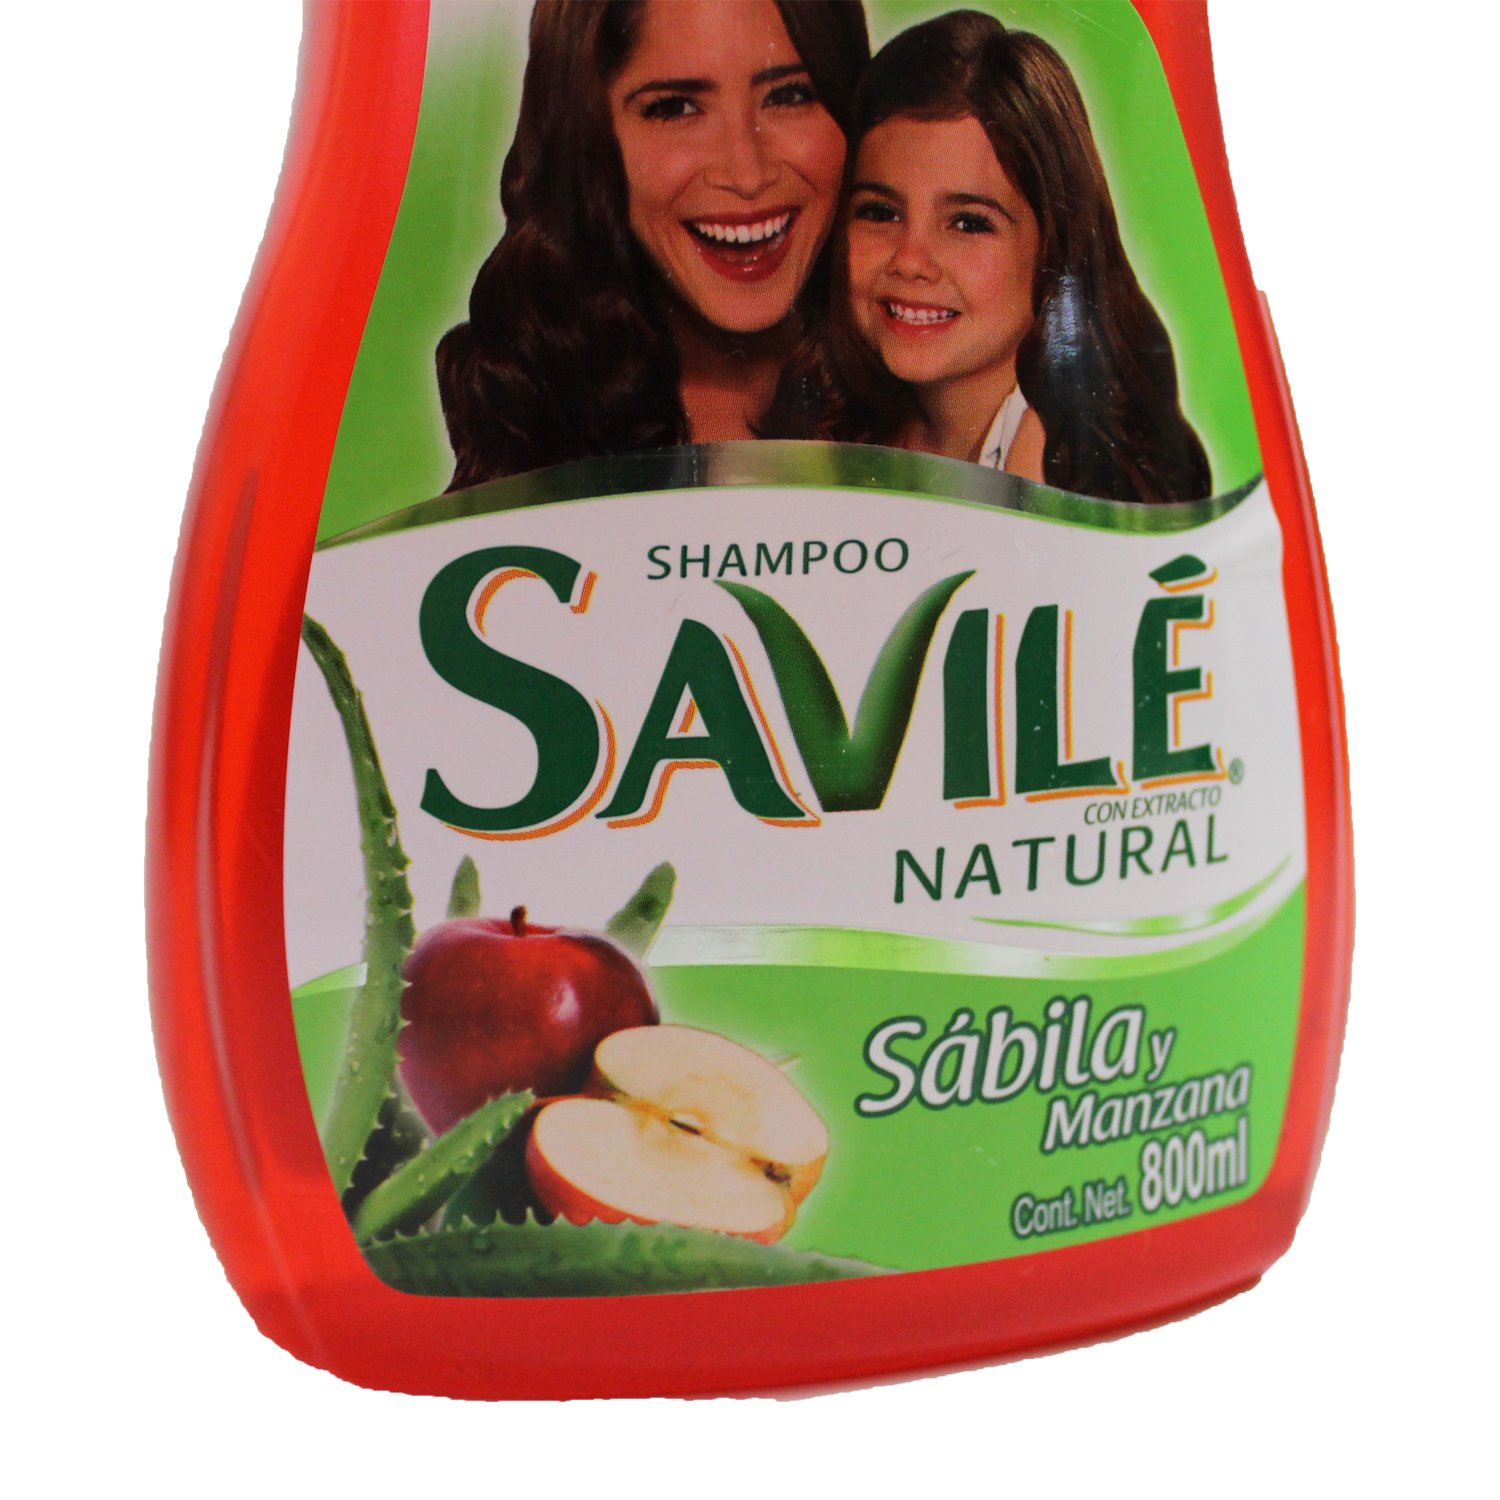 Amazon.com : Savile Shampoo with Aloe Pulp and Apple New 800ml/shampoo Con Sabila Y Manzana New 800ml : Beauty